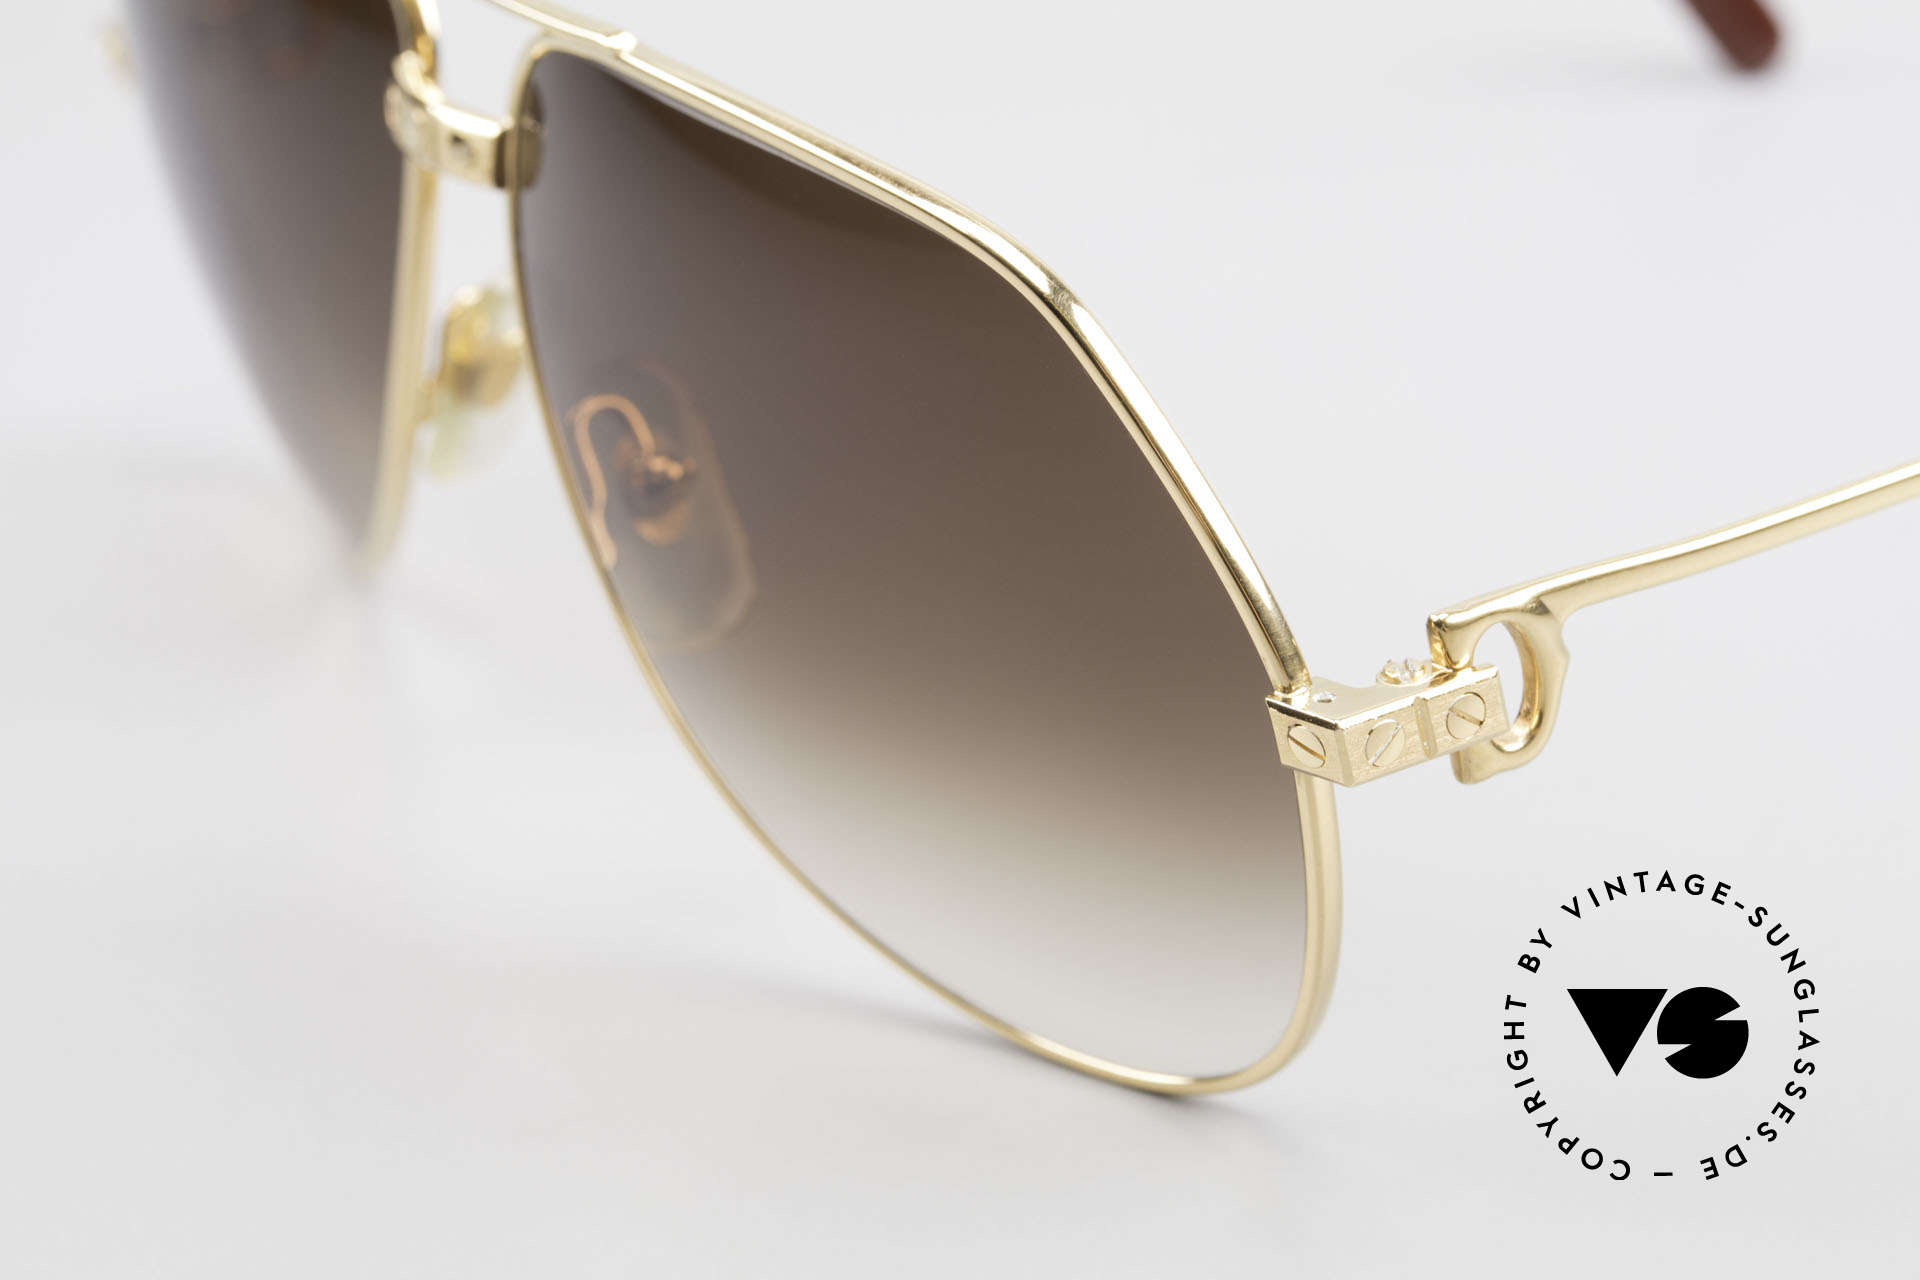 Cartier Vendome Santos - L Special Edition Fully Gold, you won't find this completely gold version, elsewhere!, Made for Men